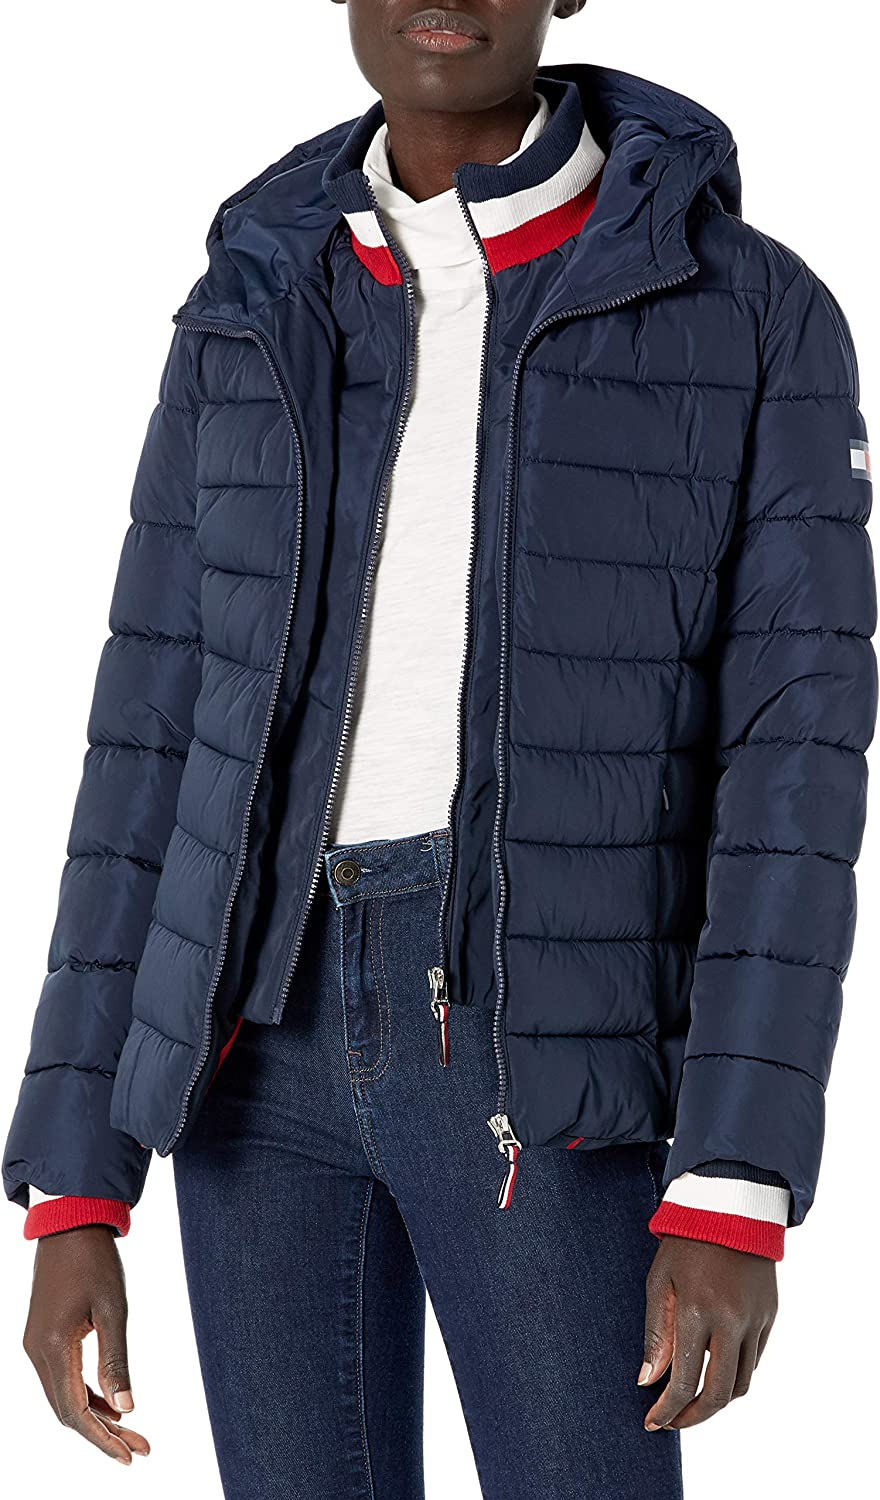 sold out Tommy Hilfiger Max 62% OFF Womens Puffer Jacket